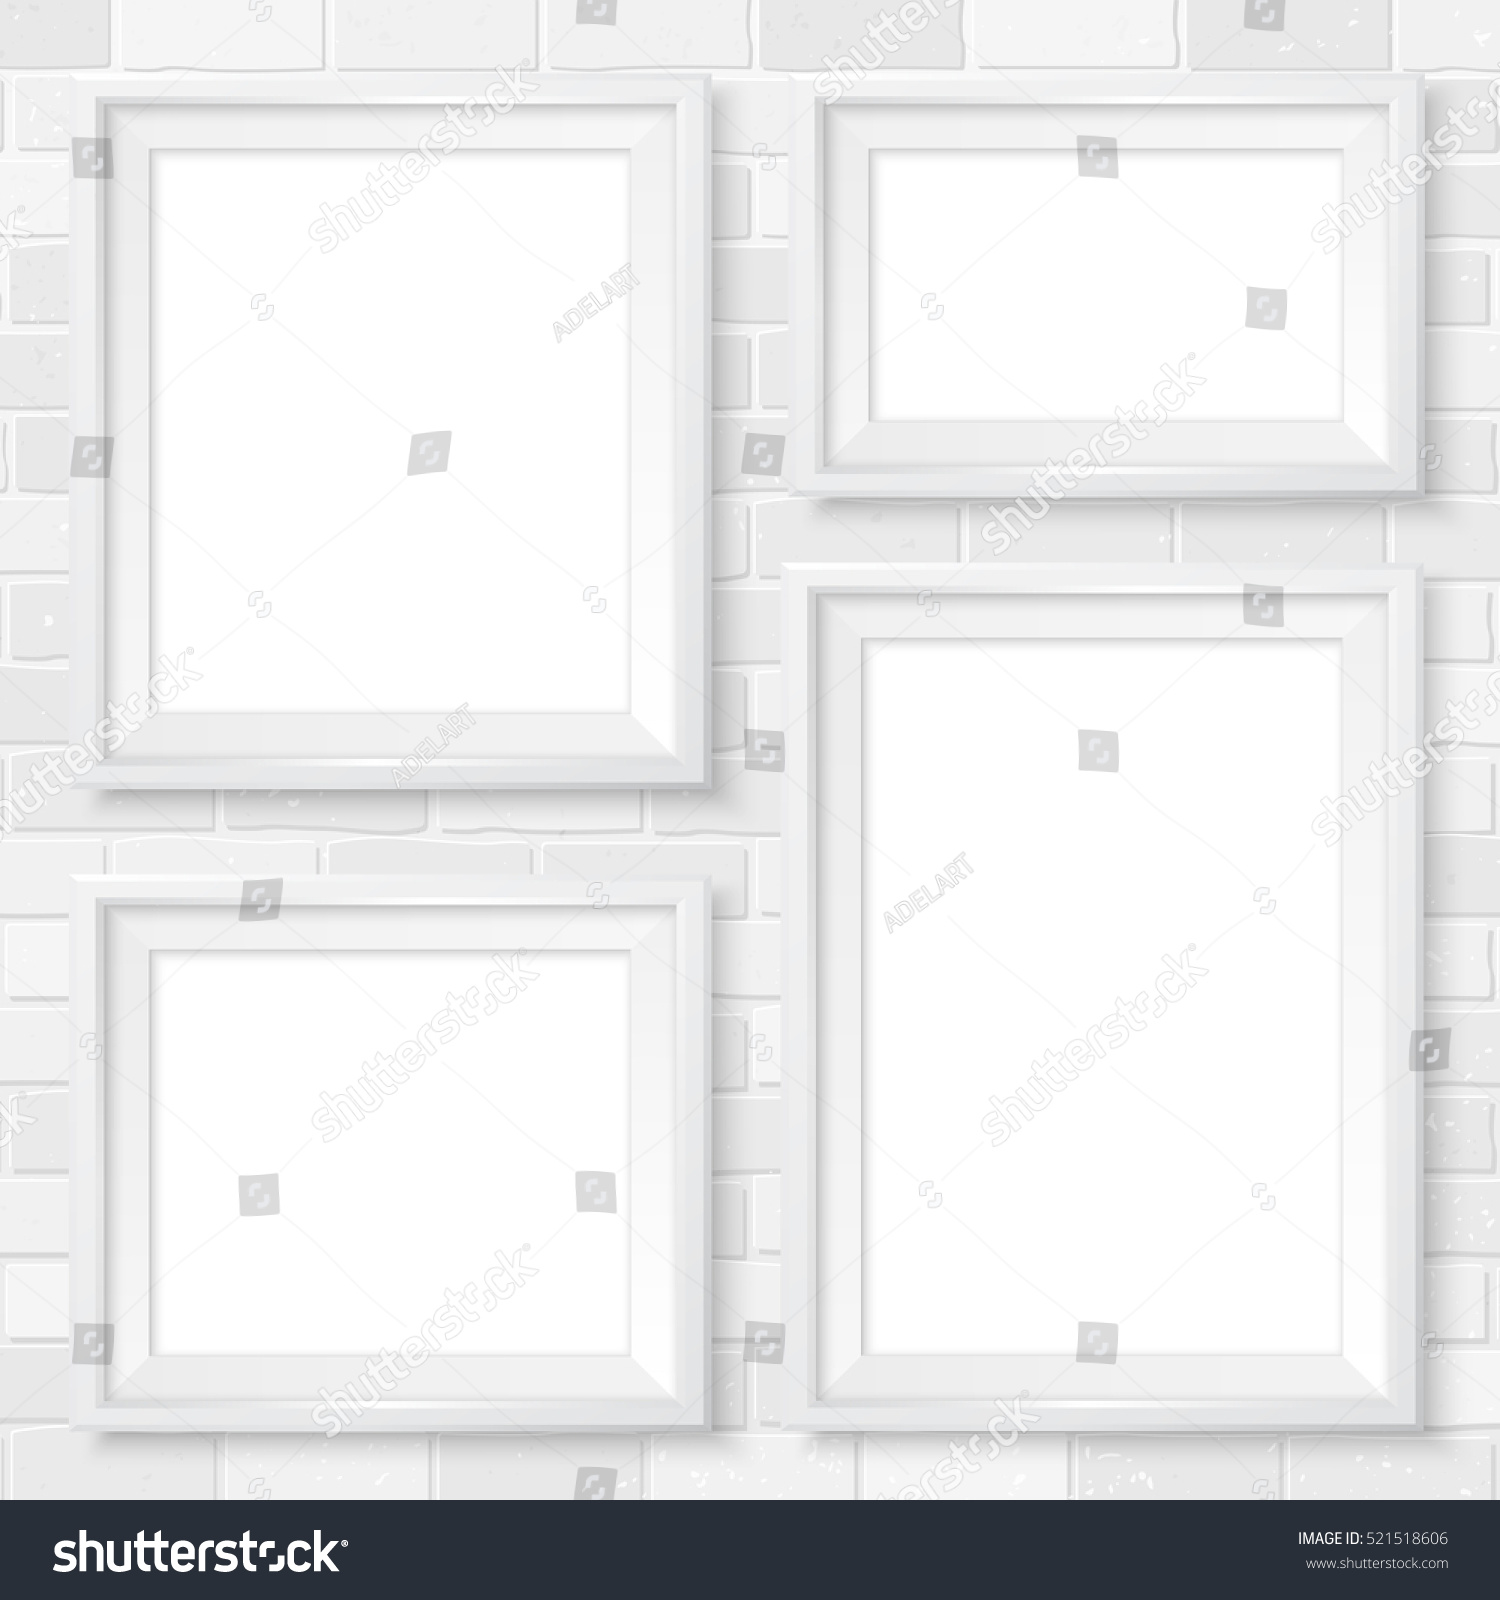 modern white picture frames. frames wall gallery on white brick wall. modern picture mock up. empty i